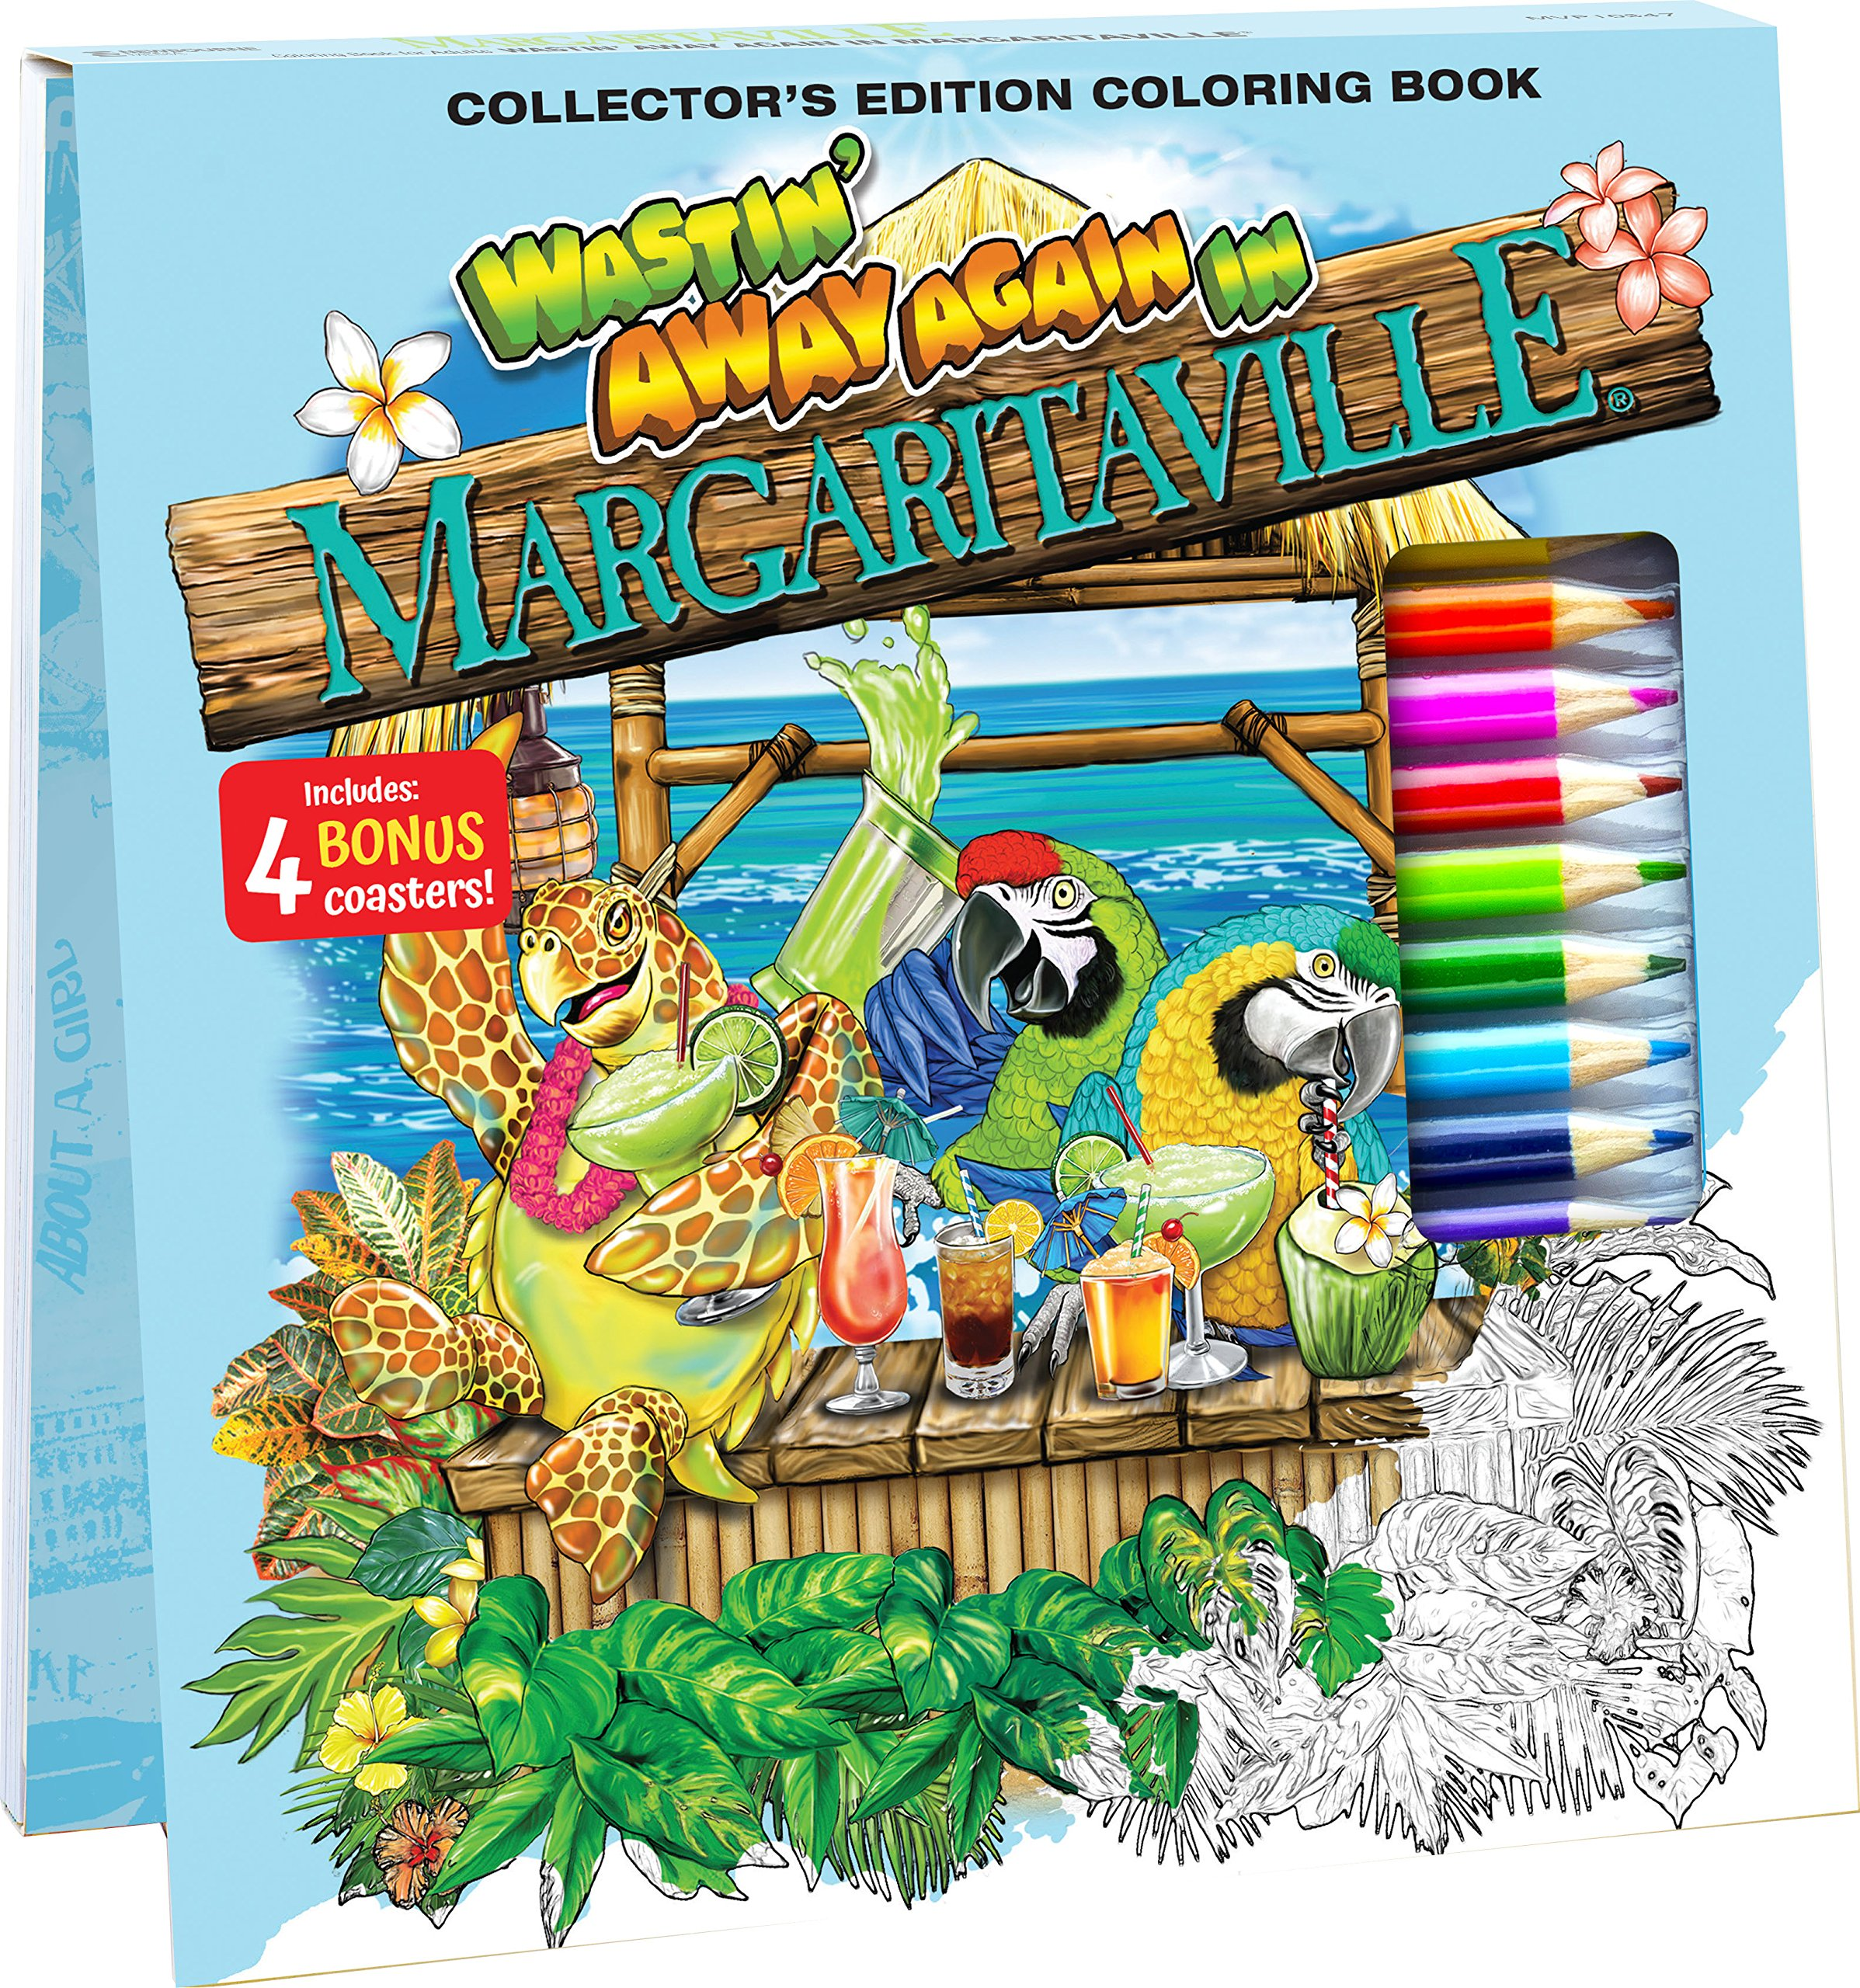 Margaritaville Coloring Book-Wasted Away Again-12 Pencils /& 40 sheets NEW!